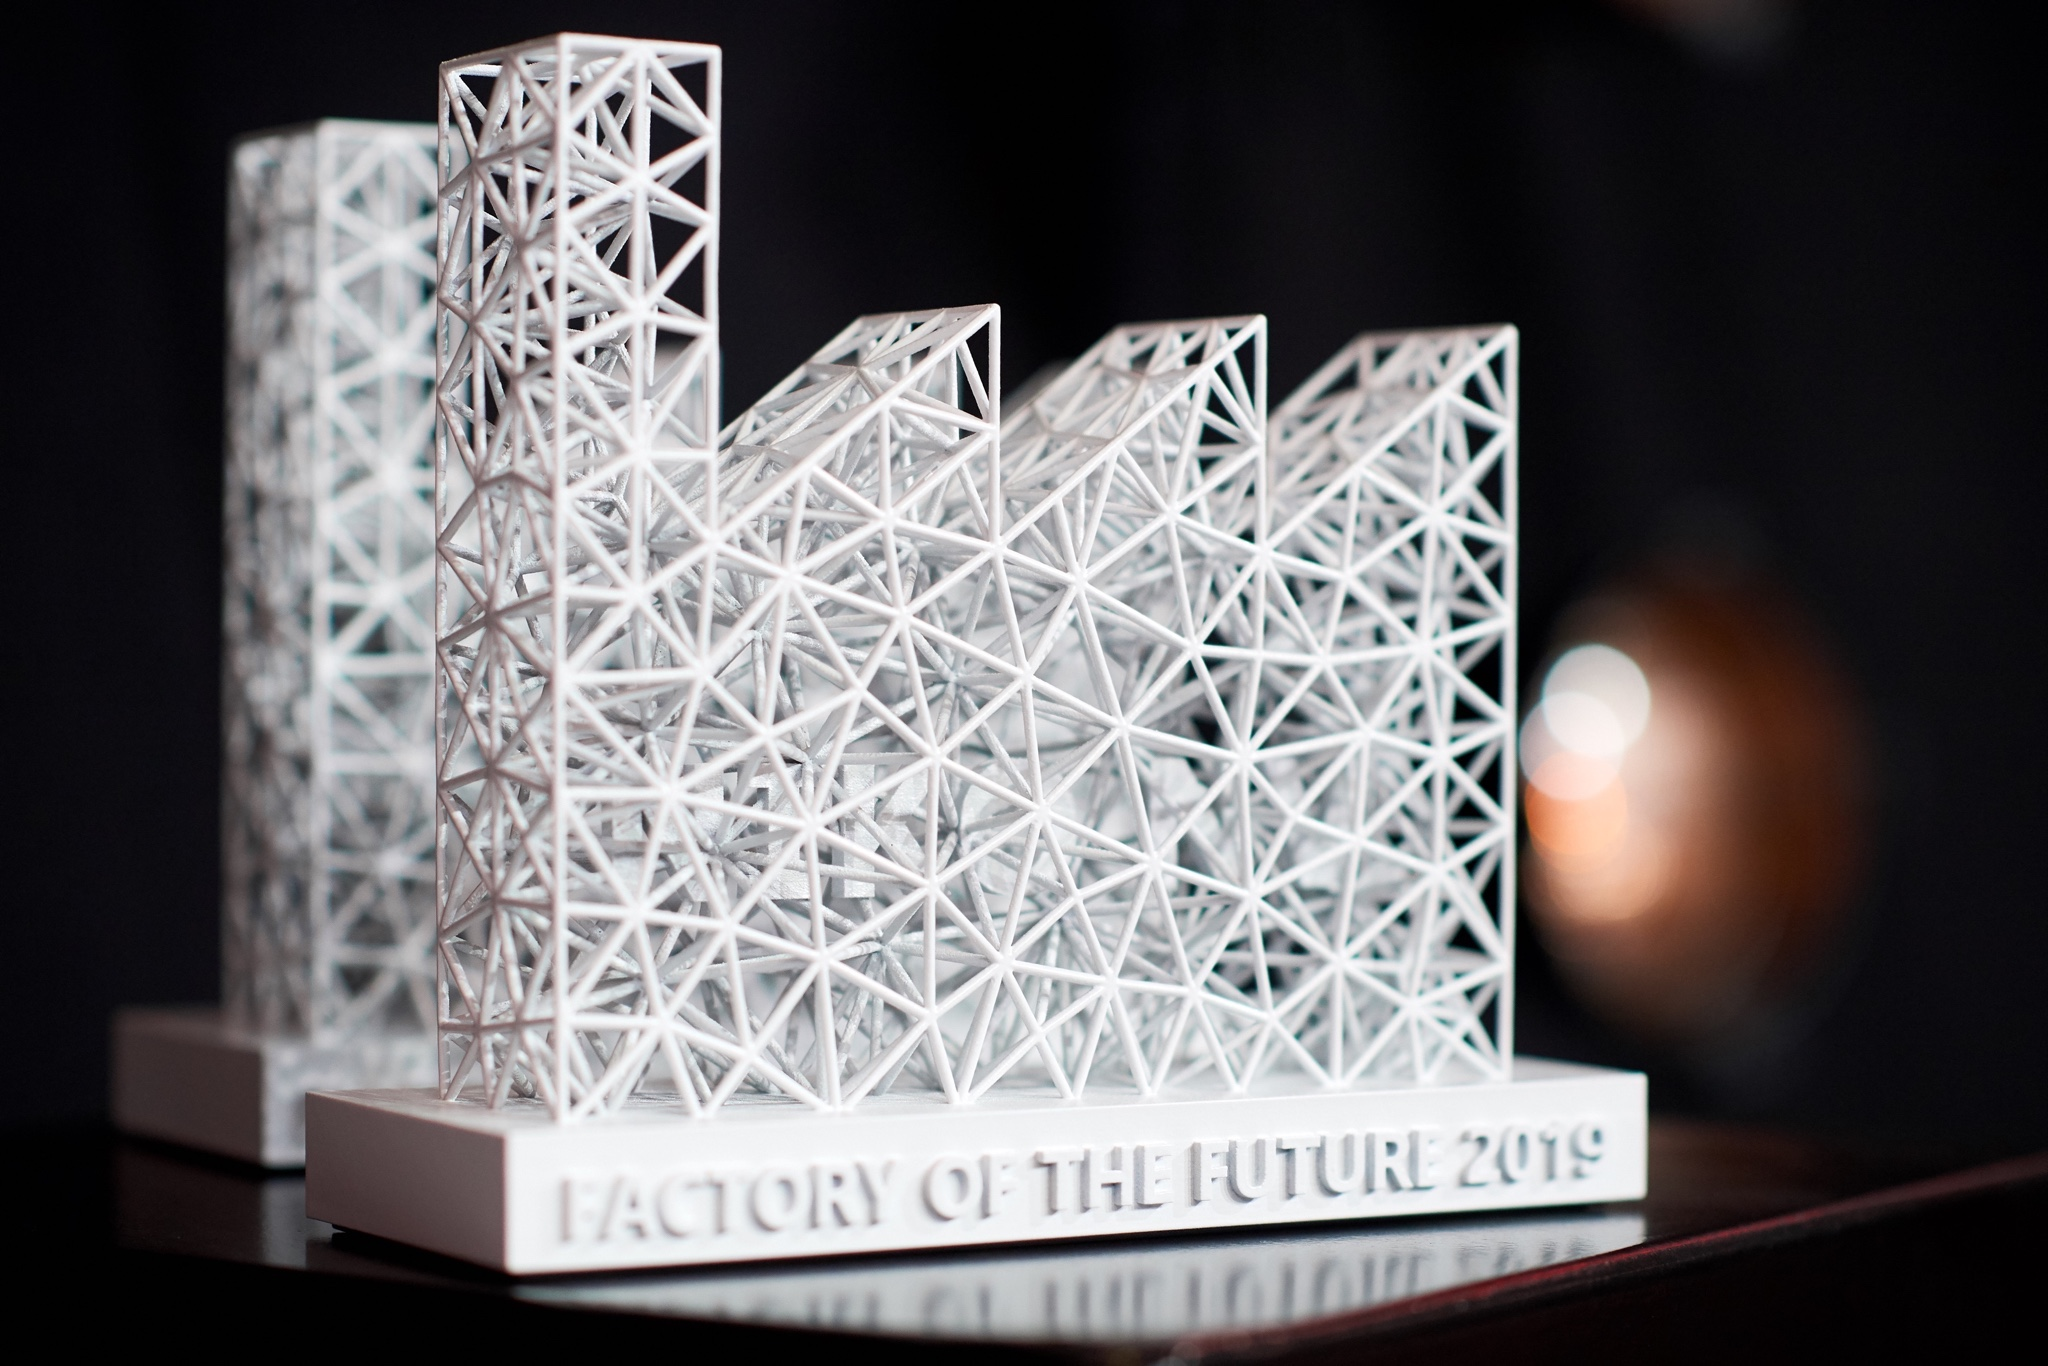 Rf-Technologies - Factory of the future 2019